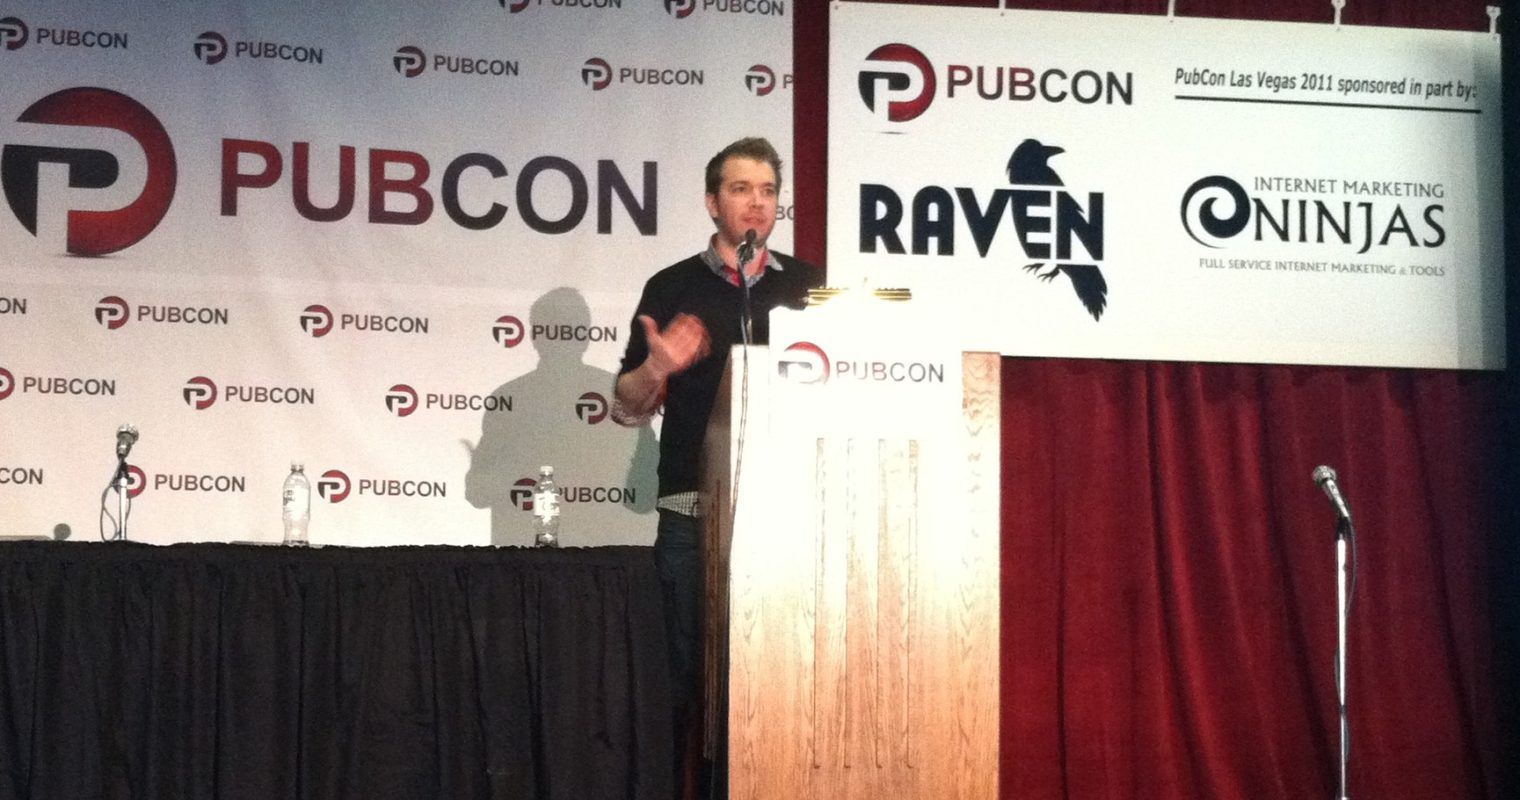 PubCon Live Blogging: The Science of Twitter & Common Twitter Myths